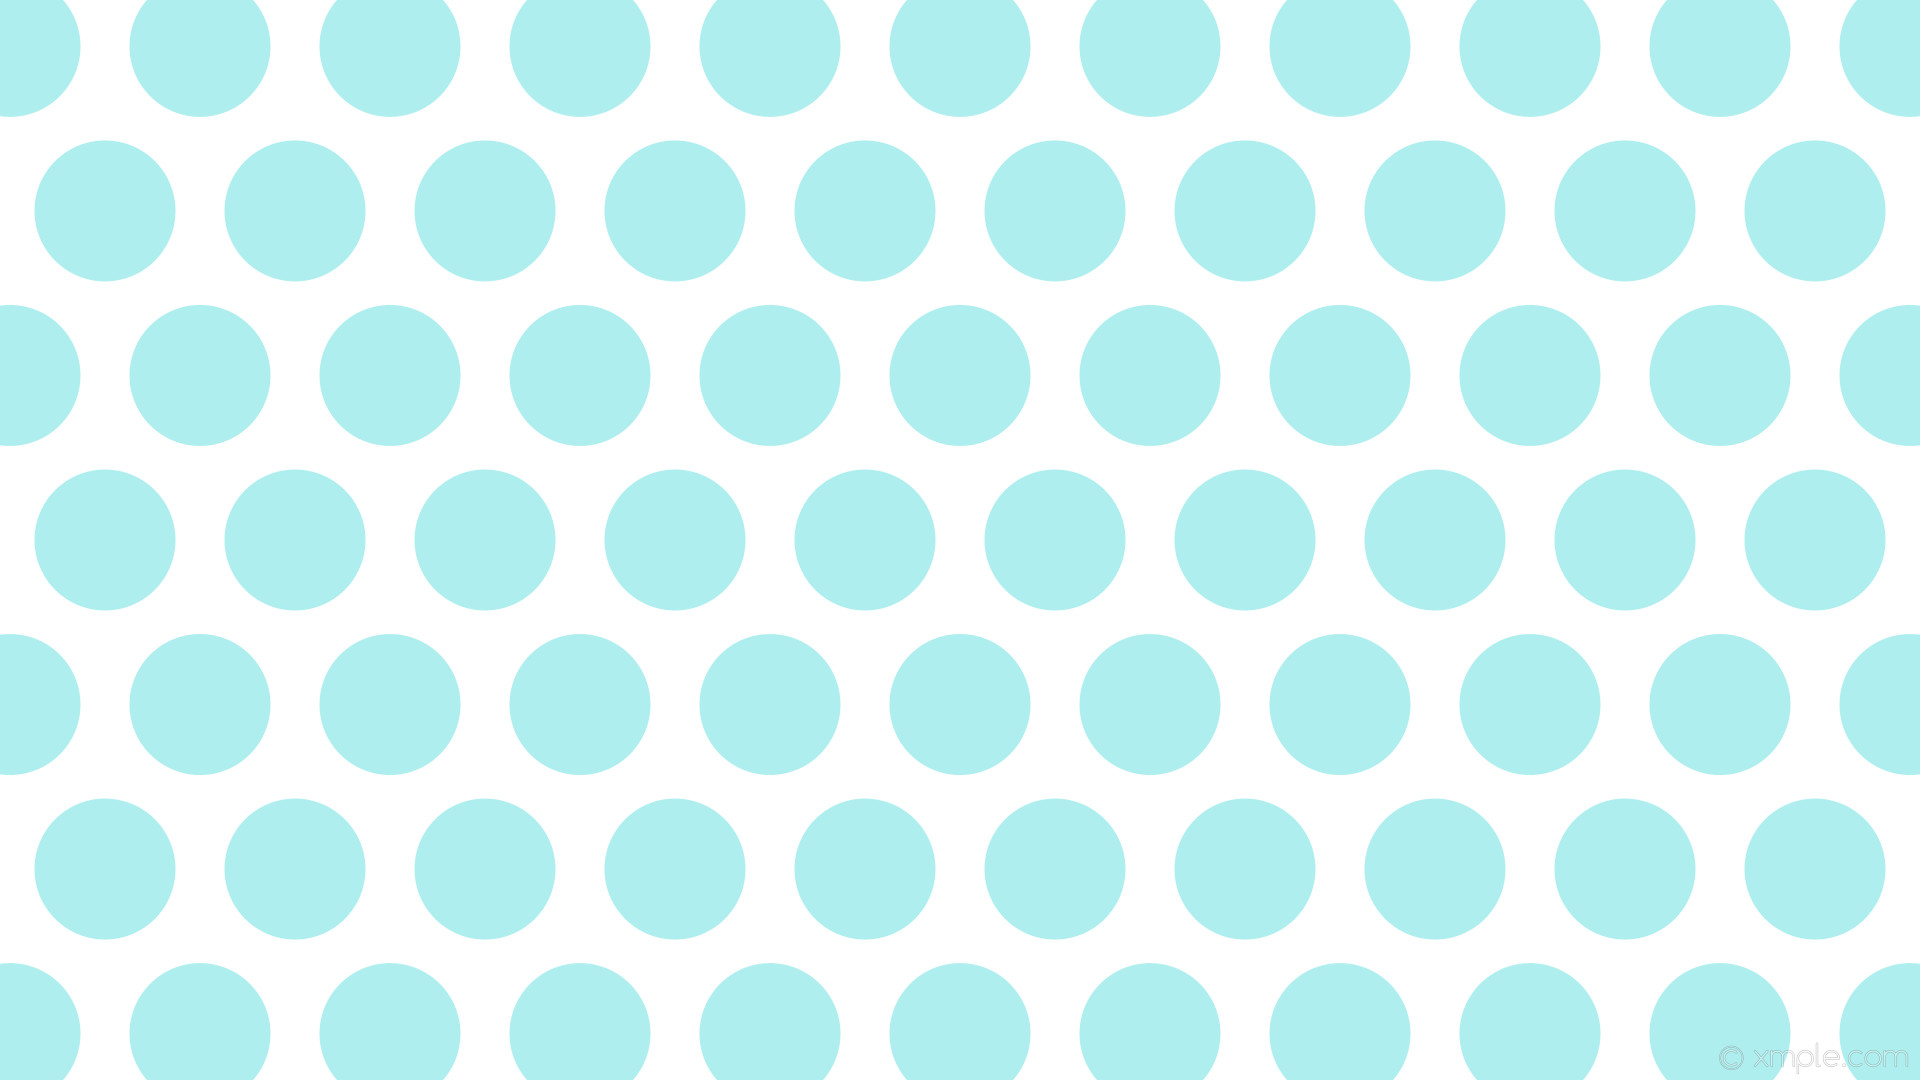 wallpaper white polka dots hexagon blue pale turquoise #ffffff #afeeee 0°  141px 190px